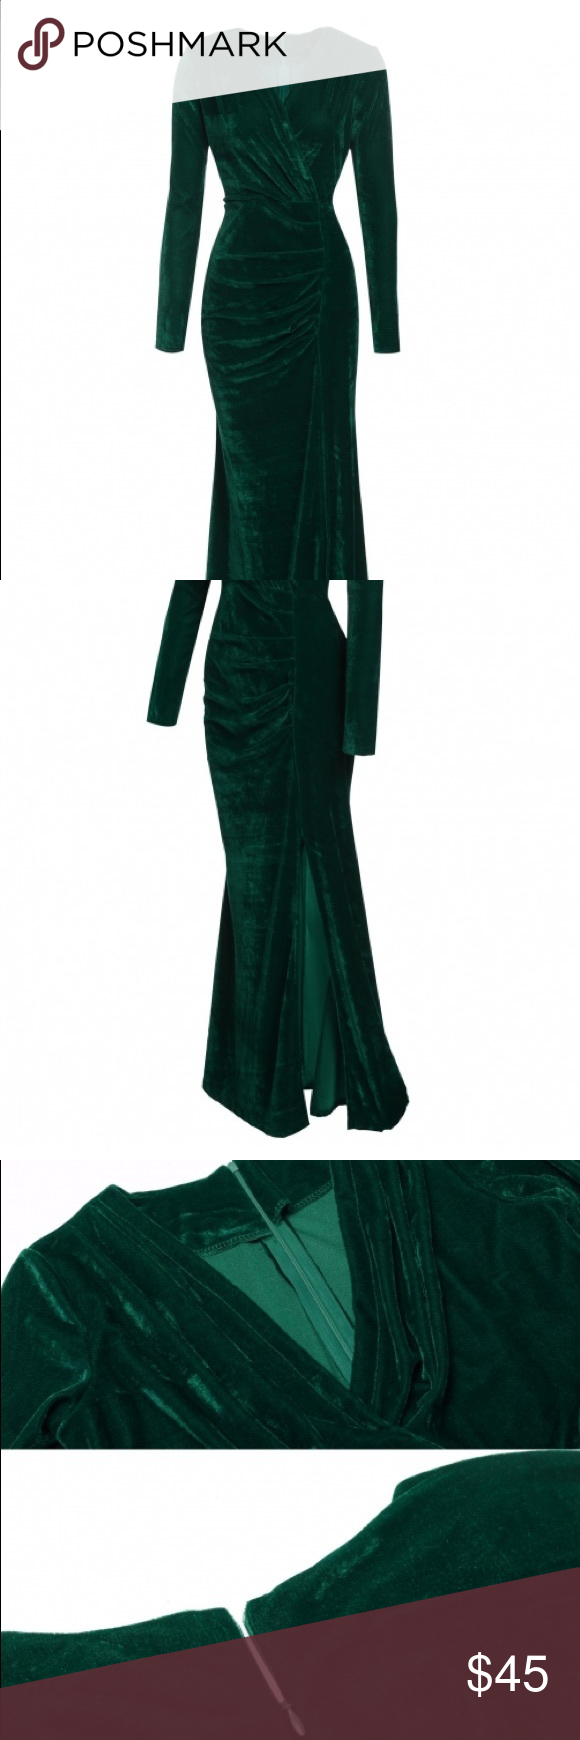 Long dark emerald green velvet dress beautiful but simple green